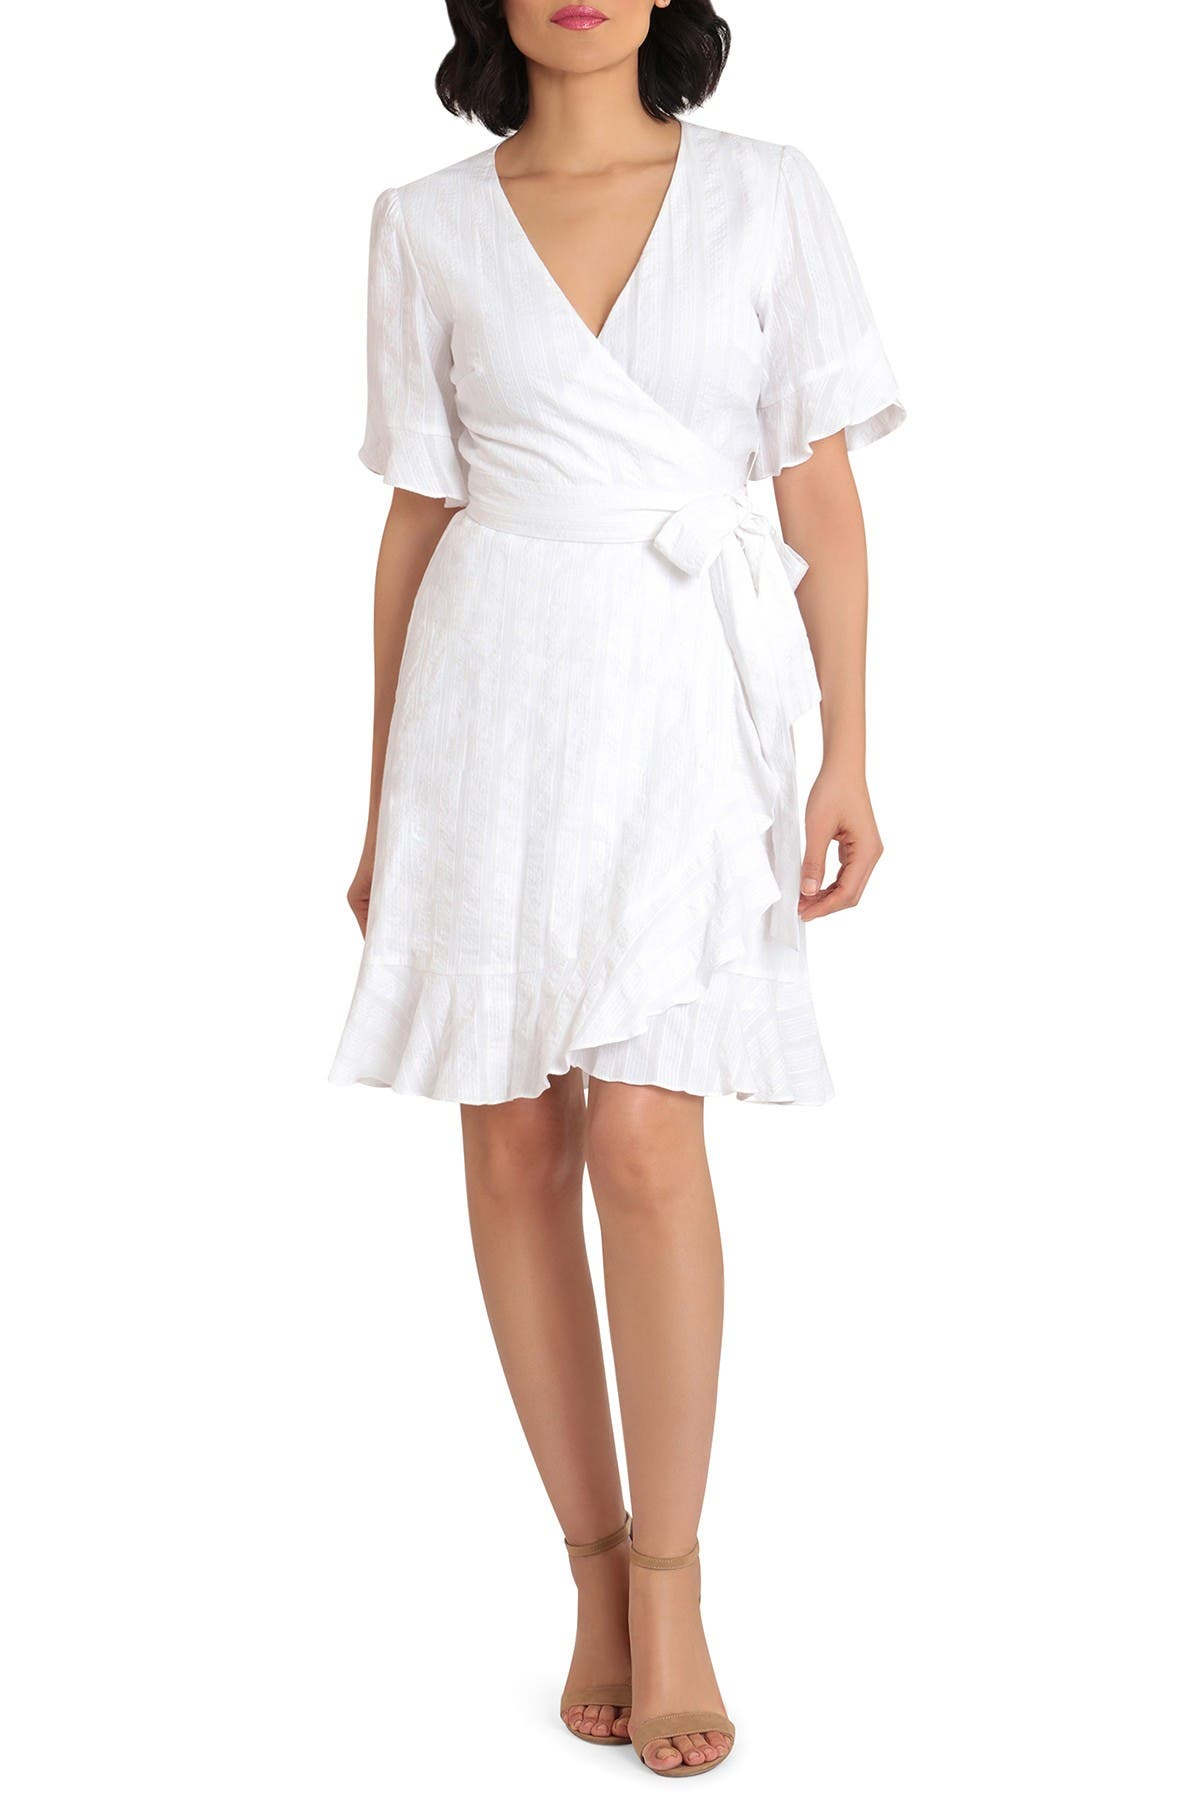 Image of Donna Morgan Short Sleeve Lace Fit and Flare Dress